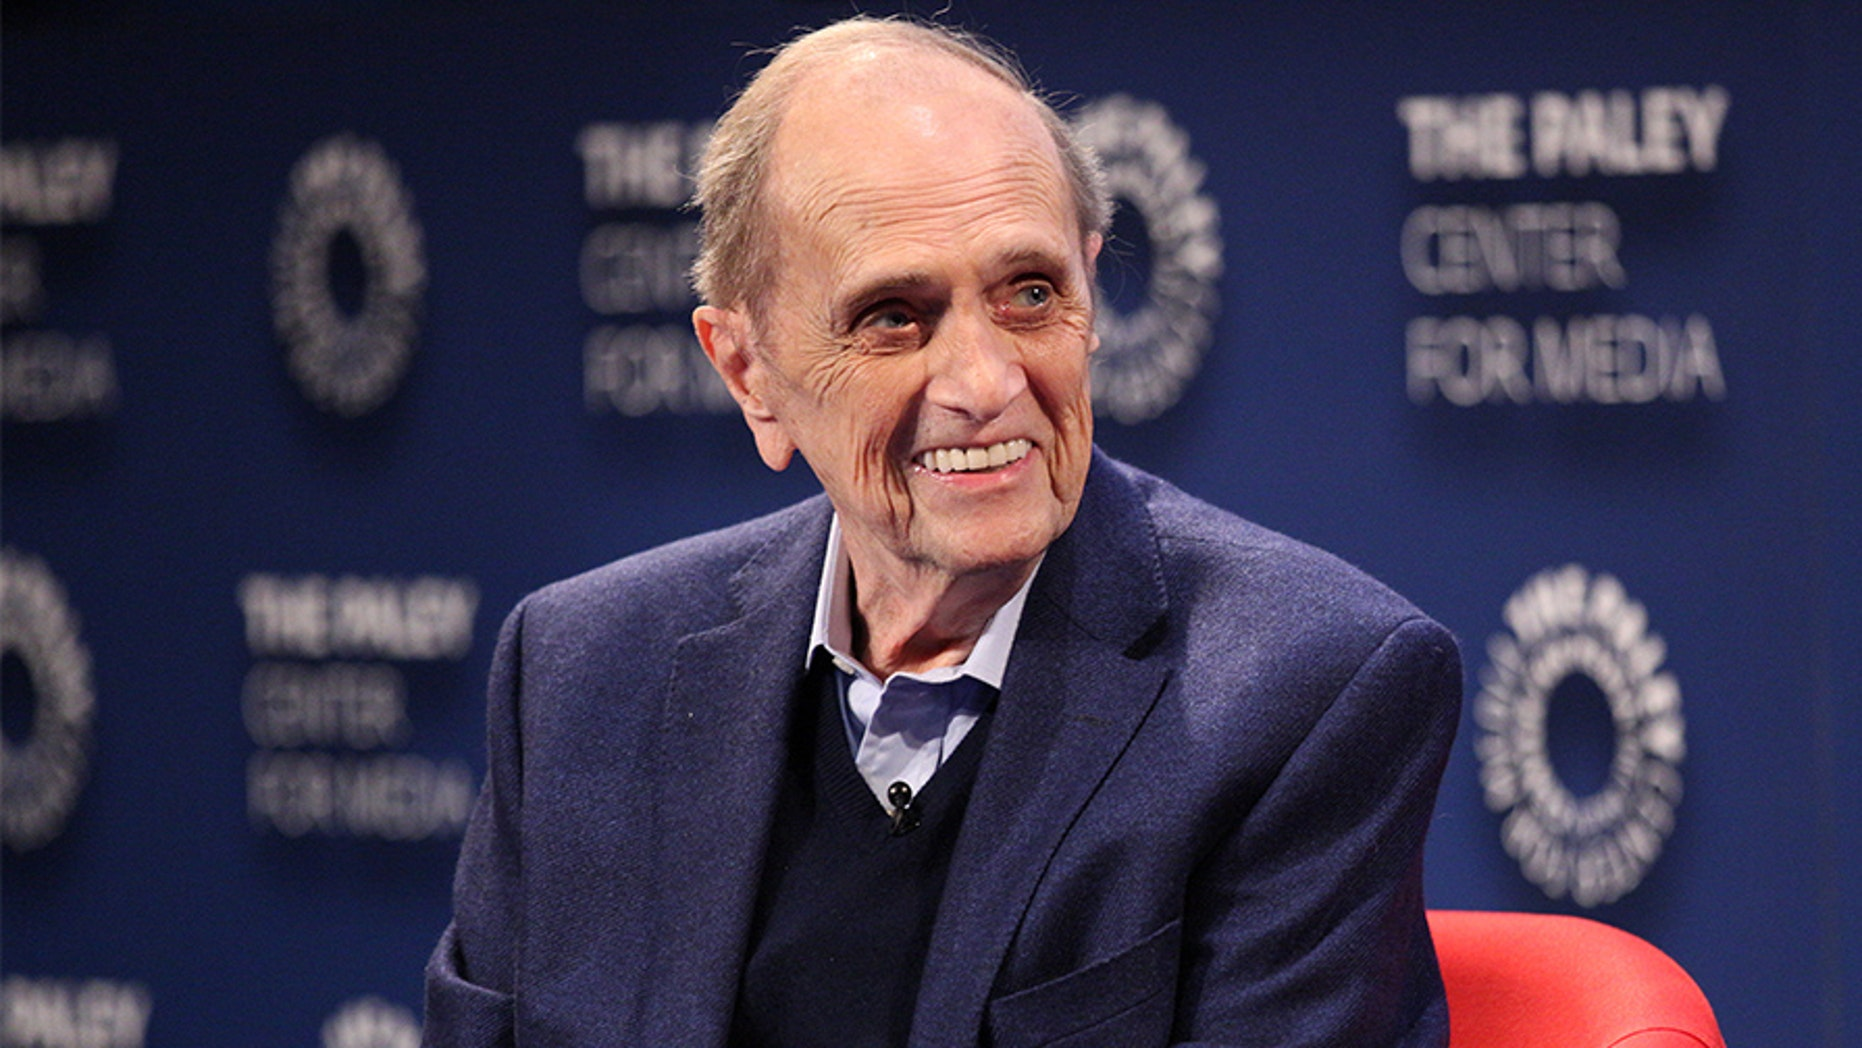 """Bob Newhart spoke about the lasting success of his beloved '70s series """"The Bob Newhart Show."""""""